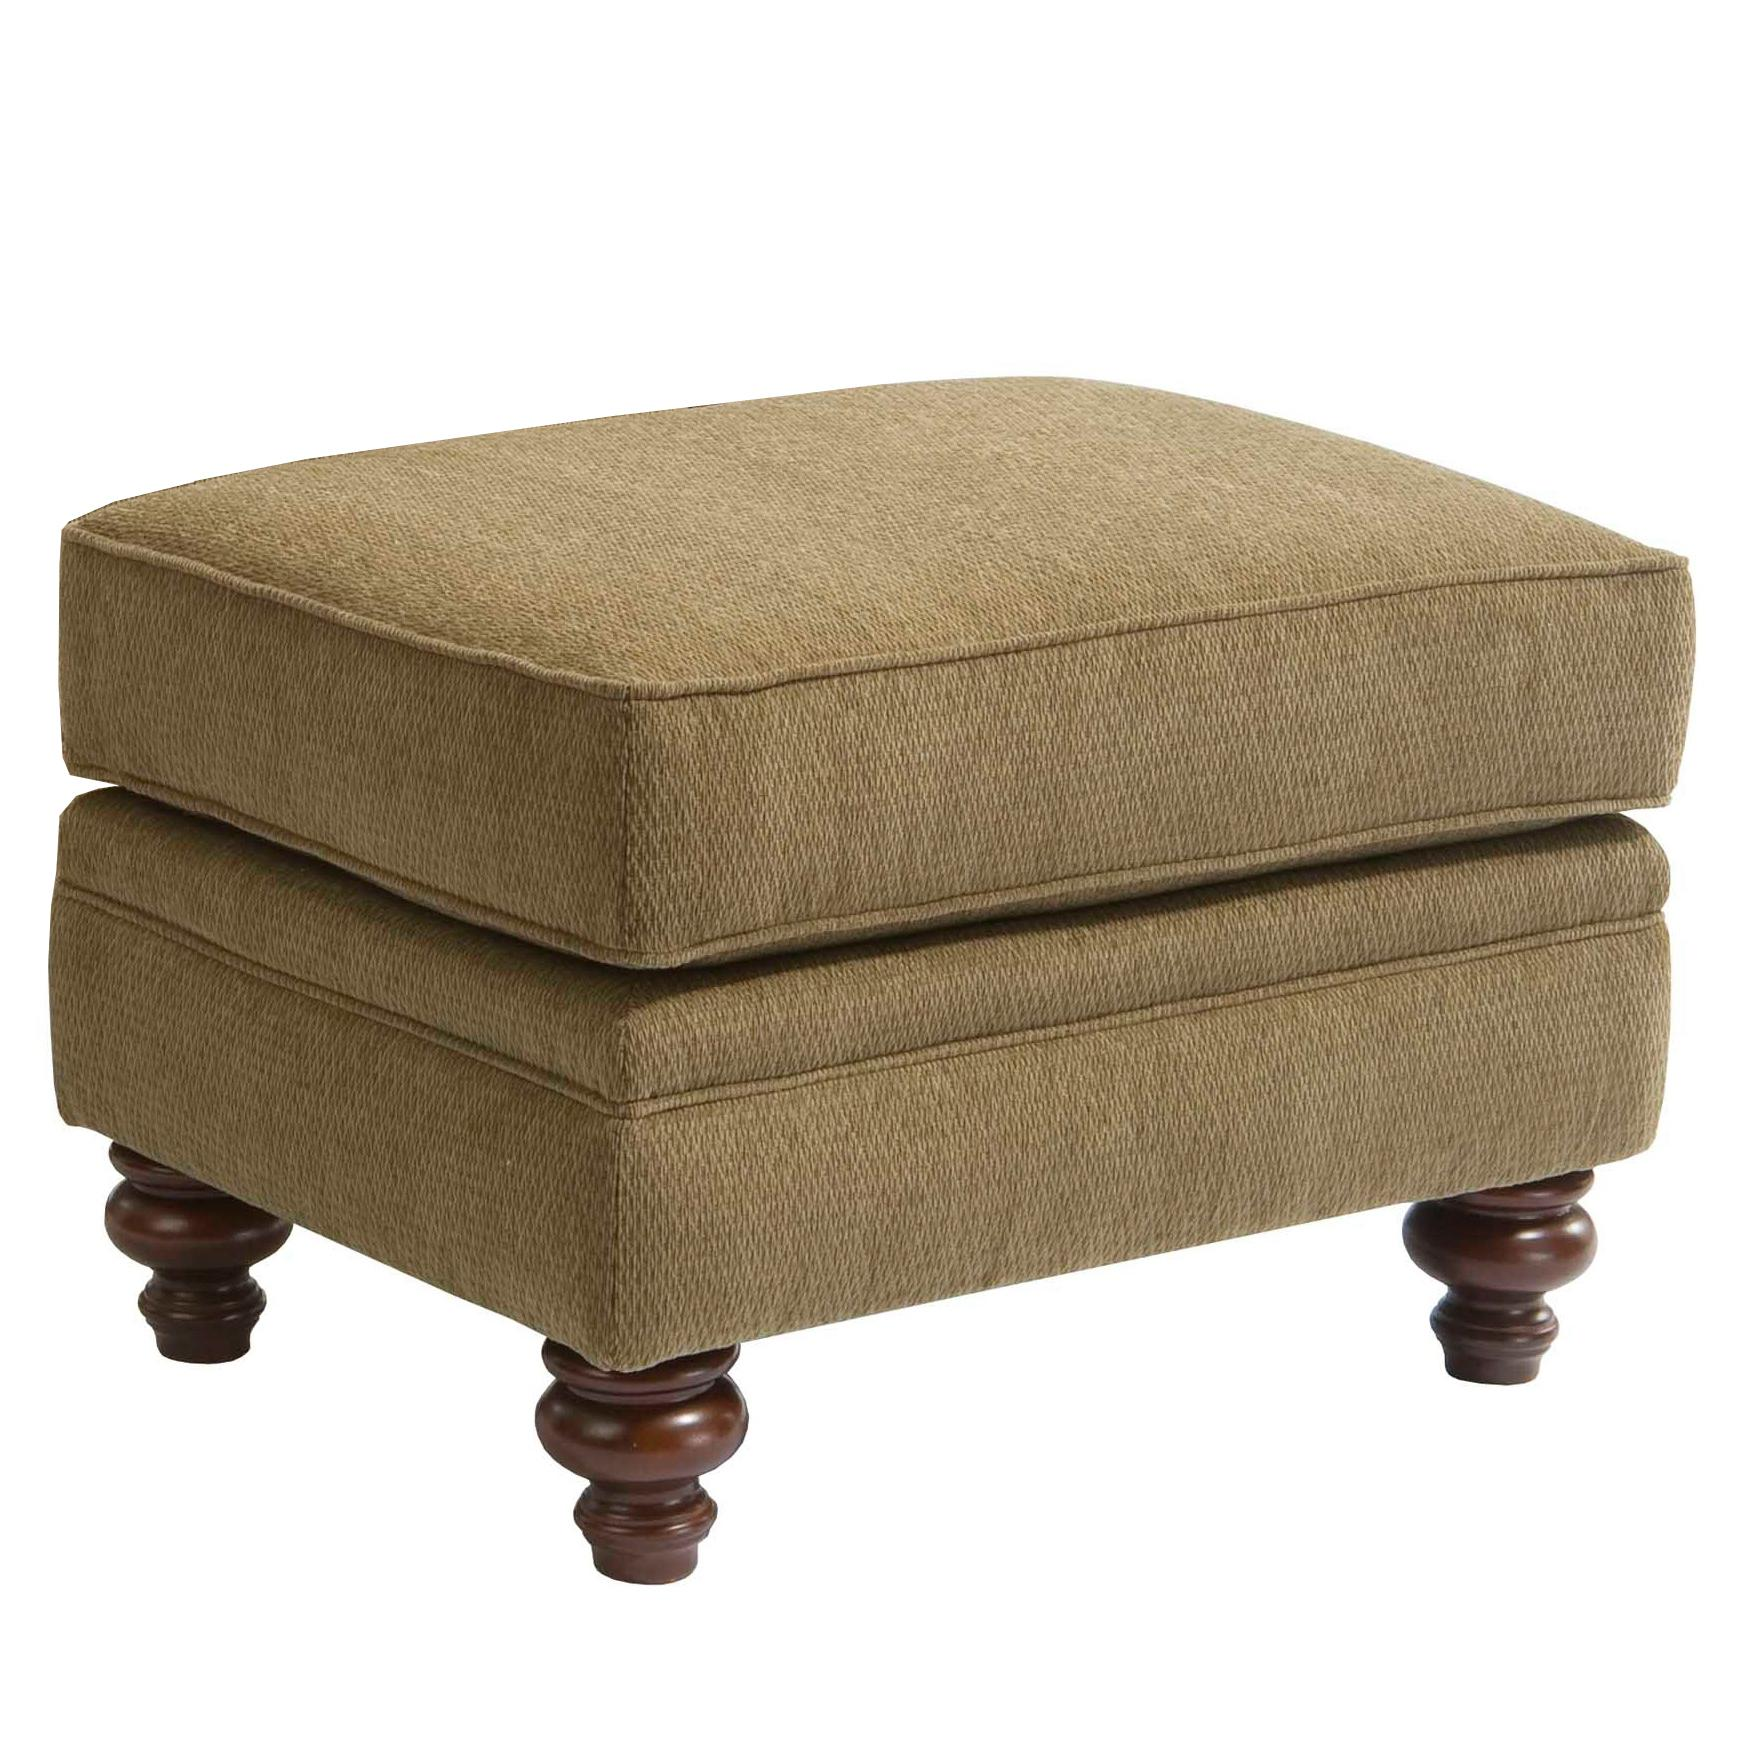 Wondrous Broyhill Furniture Larissa Upholstered Ottoman Fmg Local Dailytribune Chair Design For Home Dailytribuneorg